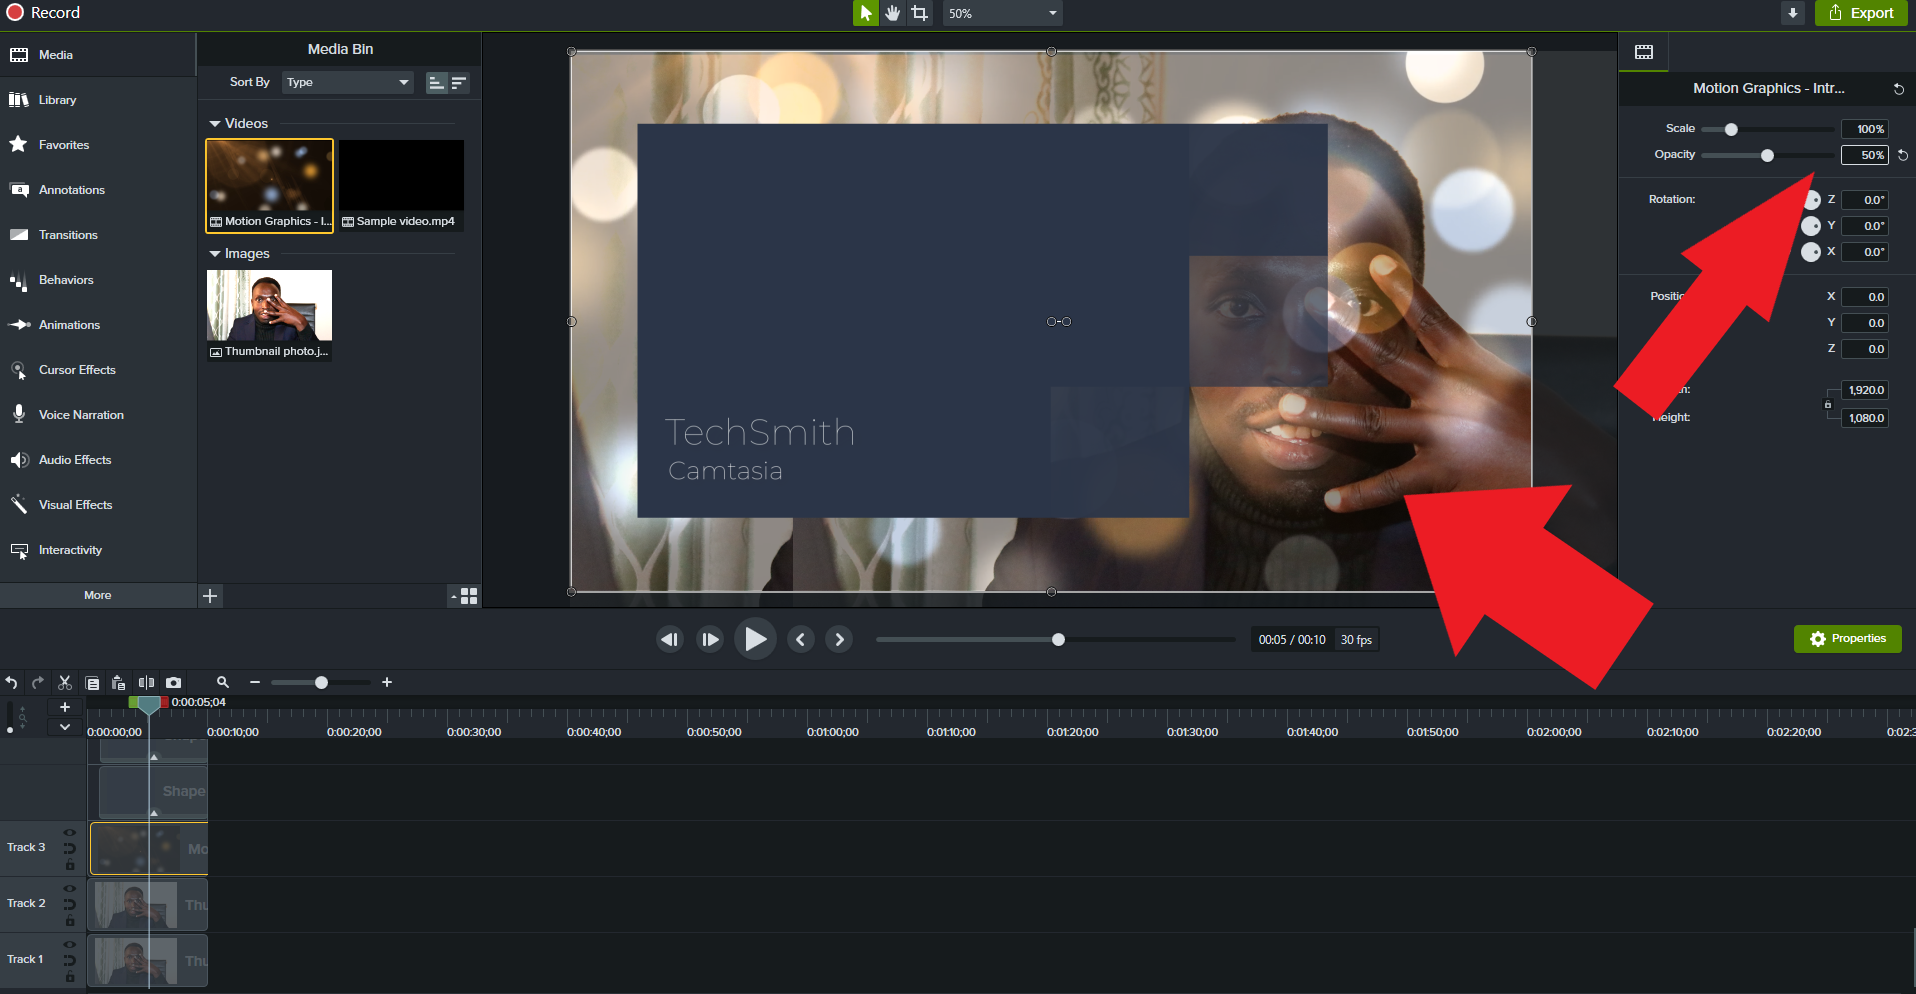 3 Ways To Customize Camtasia Studio Motion Graphics Templates in 2021